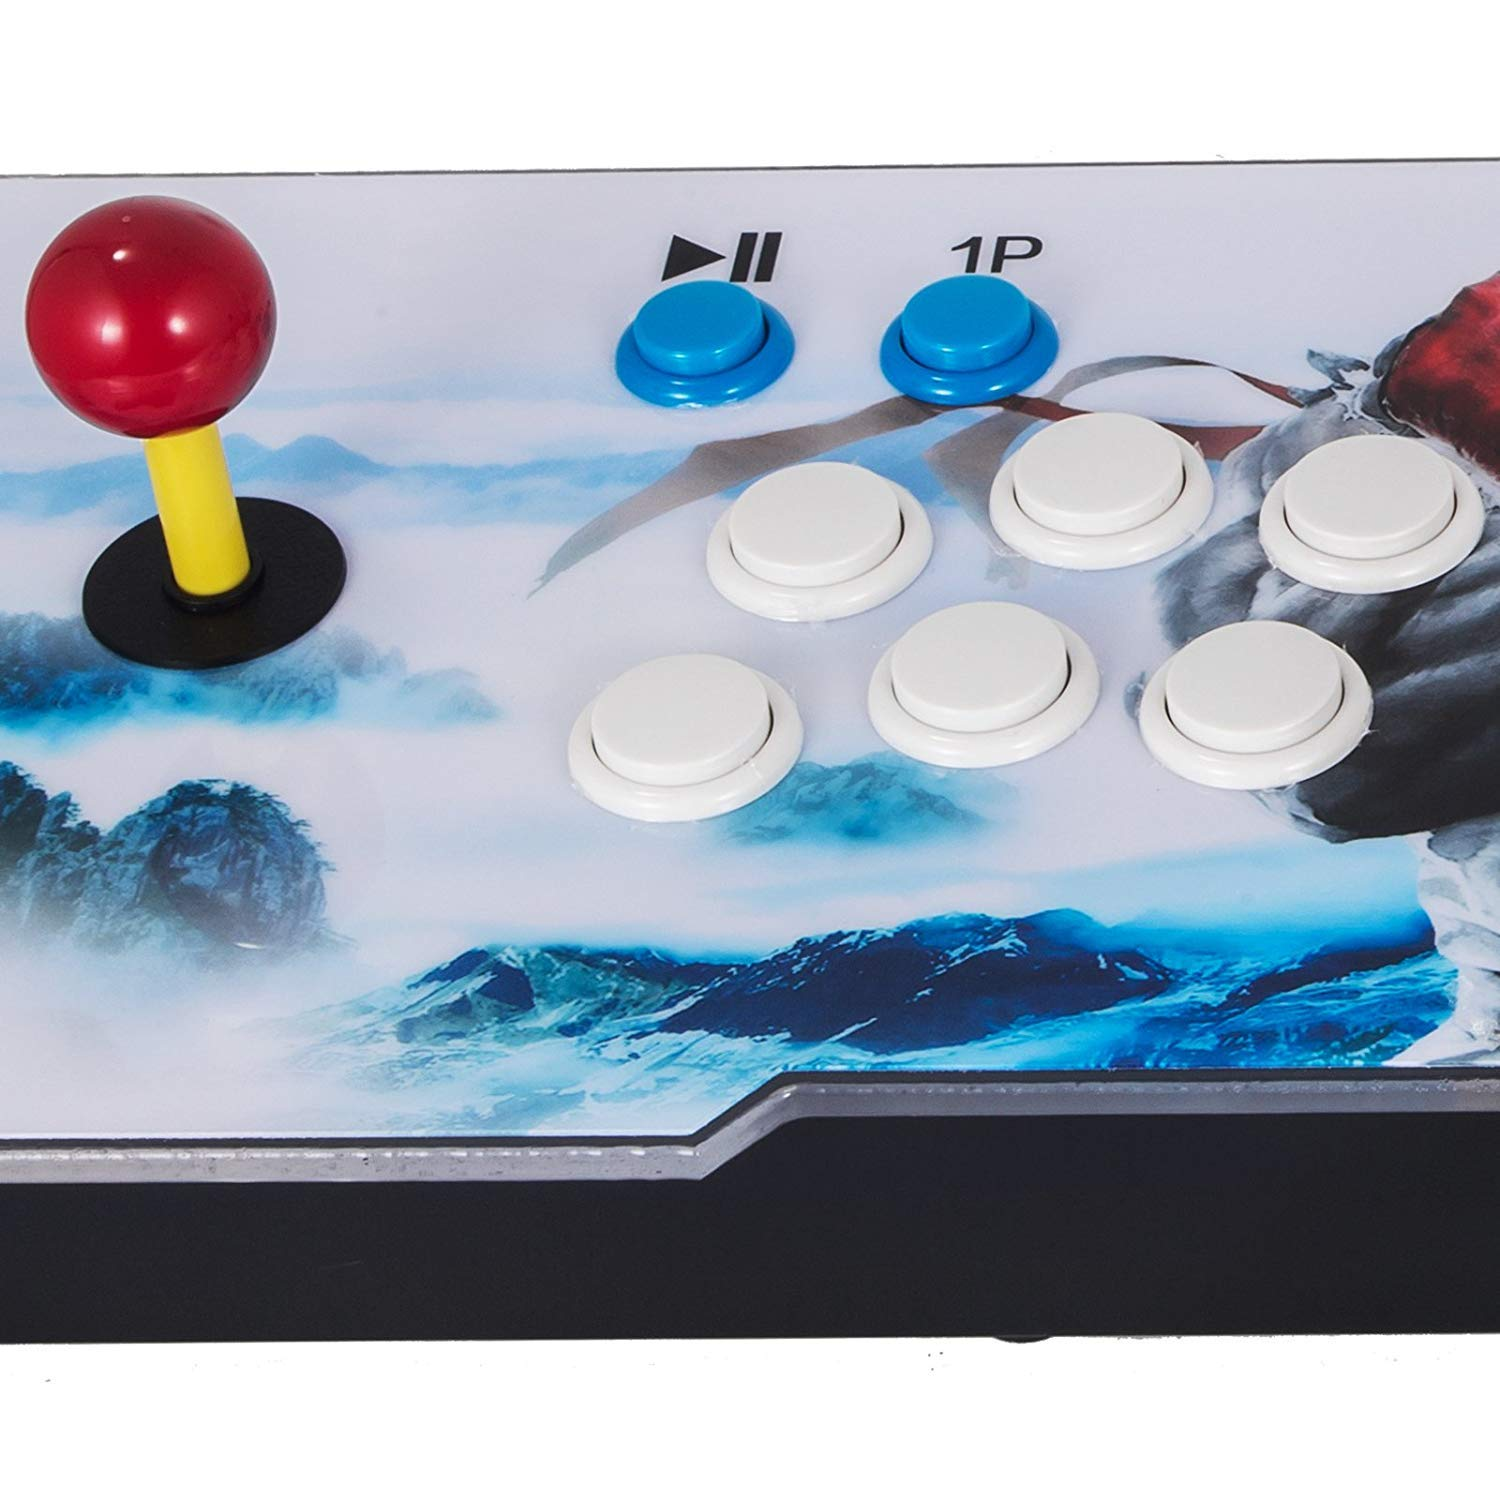 Happybuy 1500 Classic Arcade Game Machine 2 Players Pandoras Box 9s 1280x720 Full HD Video Game Console with Arcade Joystick Support HDMI VGA Output (White&Blue) by Happybuy (Image #7)